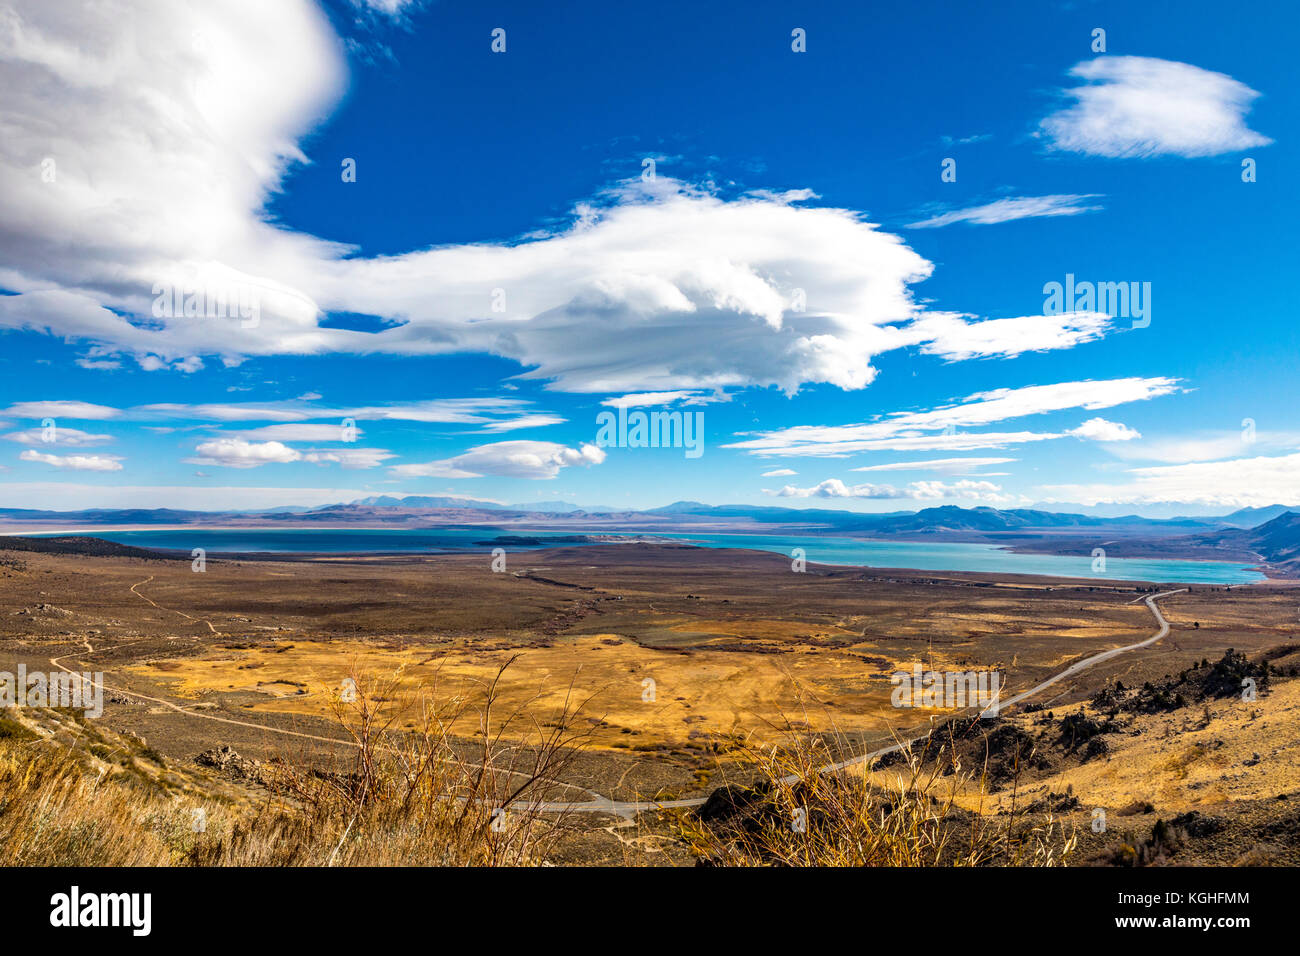 from-mono-lake-vista-point-along-california-highway-395-in-the-eastern-KGHFMM.jpg